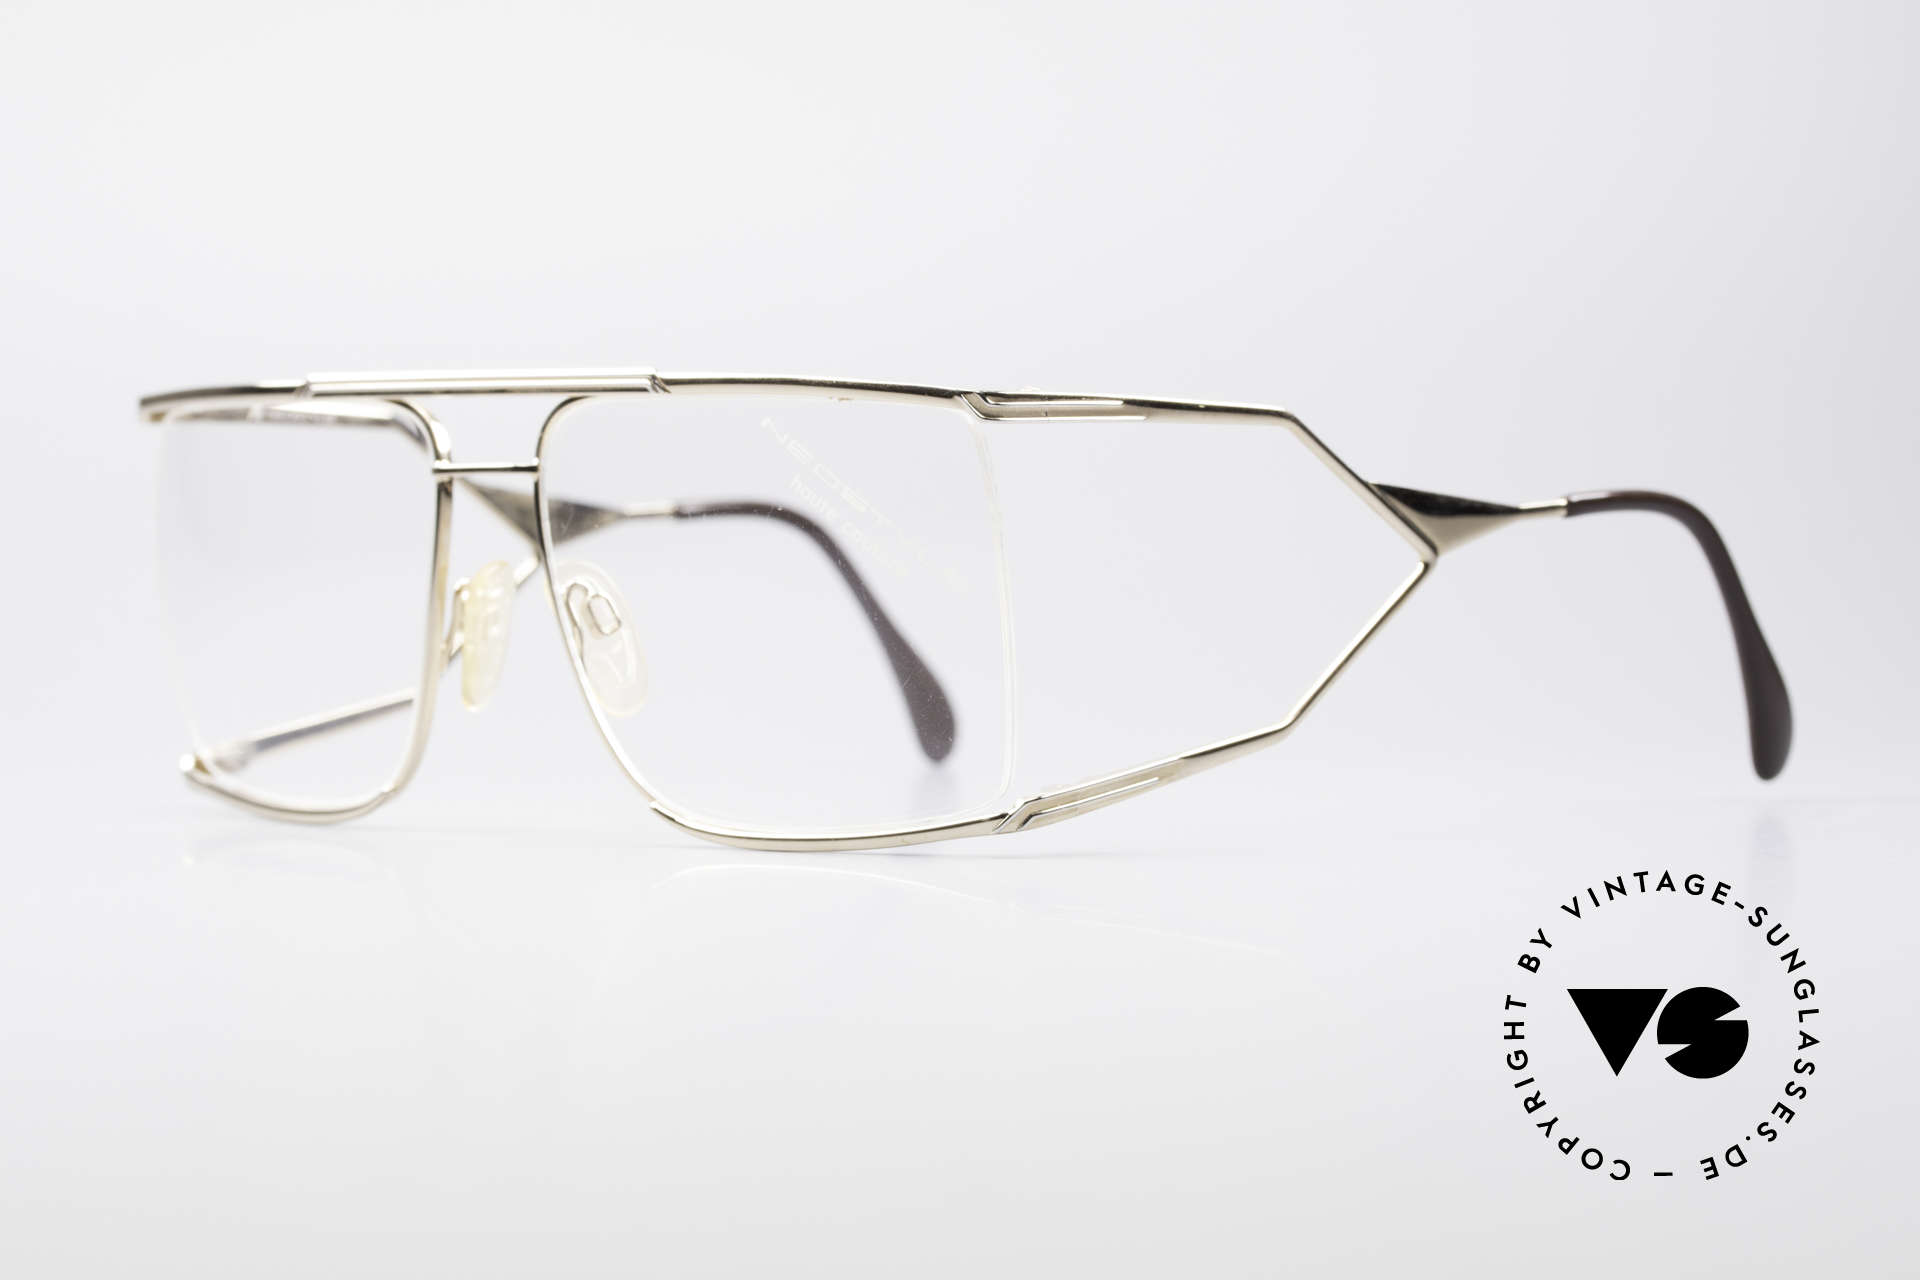 Neostyle Nautic 6 80's Miami Vice Eyeglasses, worn by actor Joseph TURKEL in Miami Vice, 1988, Made for Men